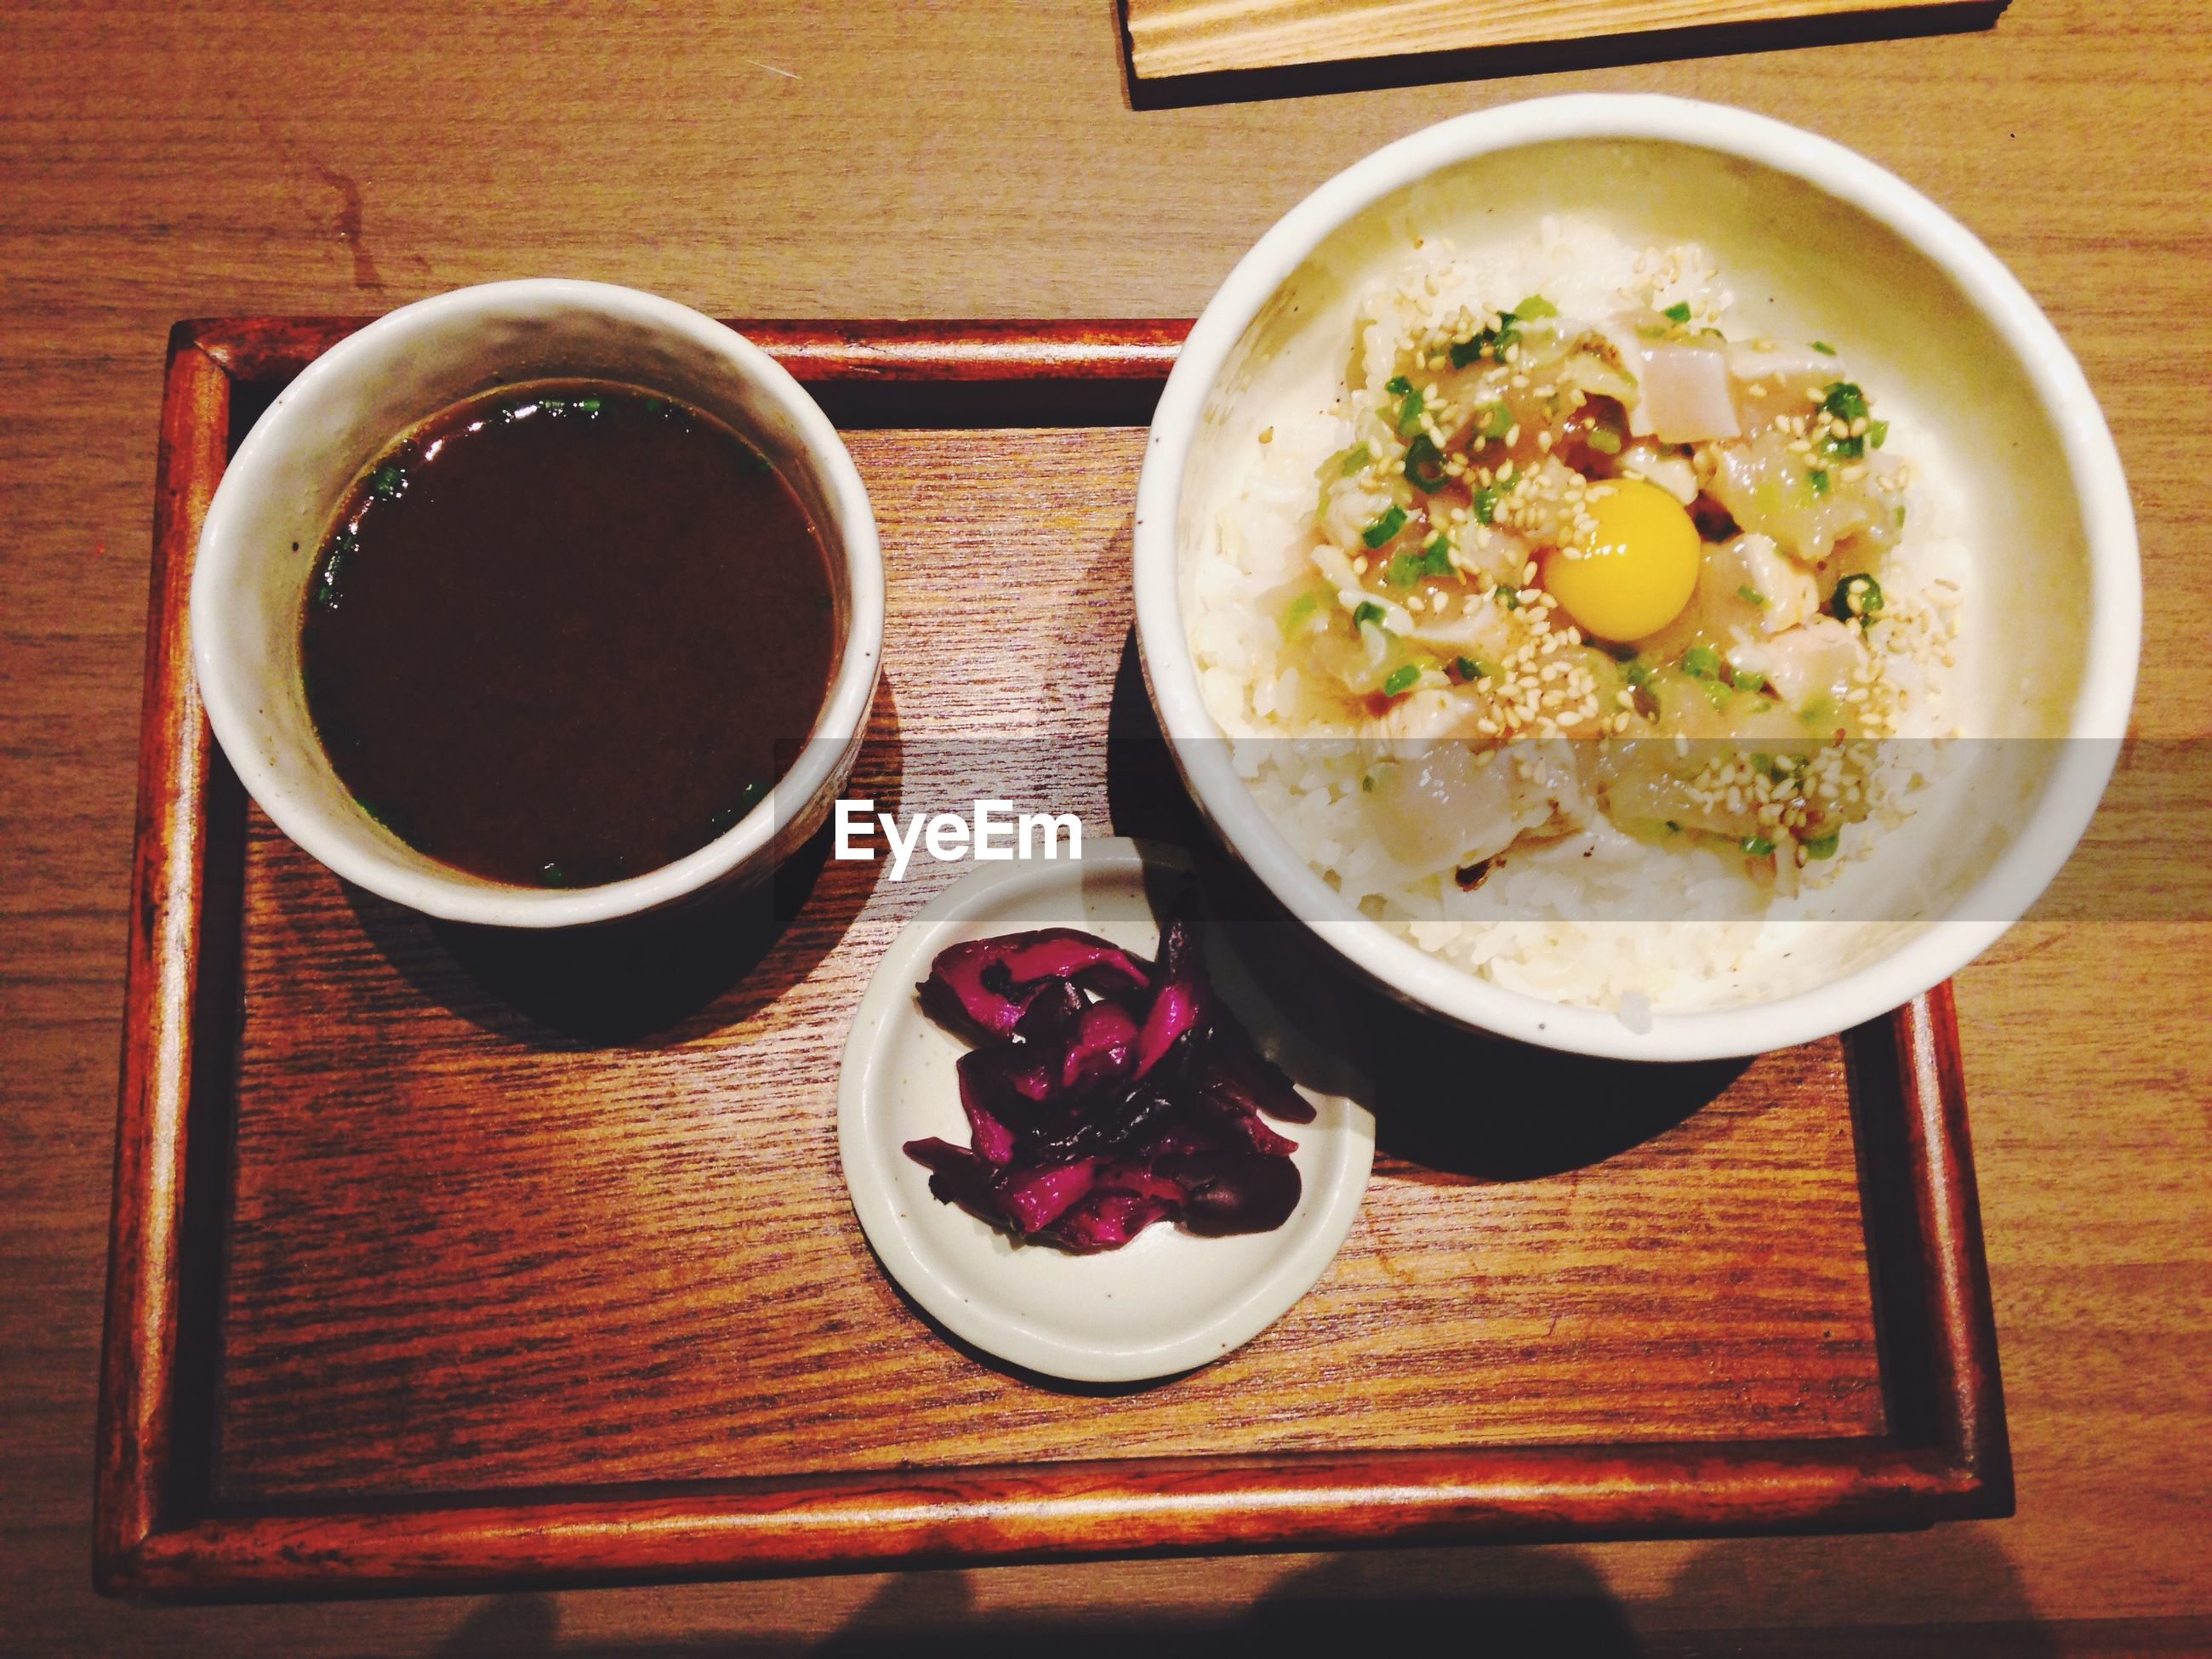 food and drink, table, freshness, food, indoors, still life, healthy eating, plate, ready-to-eat, bowl, high angle view, directly above, drink, meal, serving size, wood - material, spoon, breakfast, refreshment, served